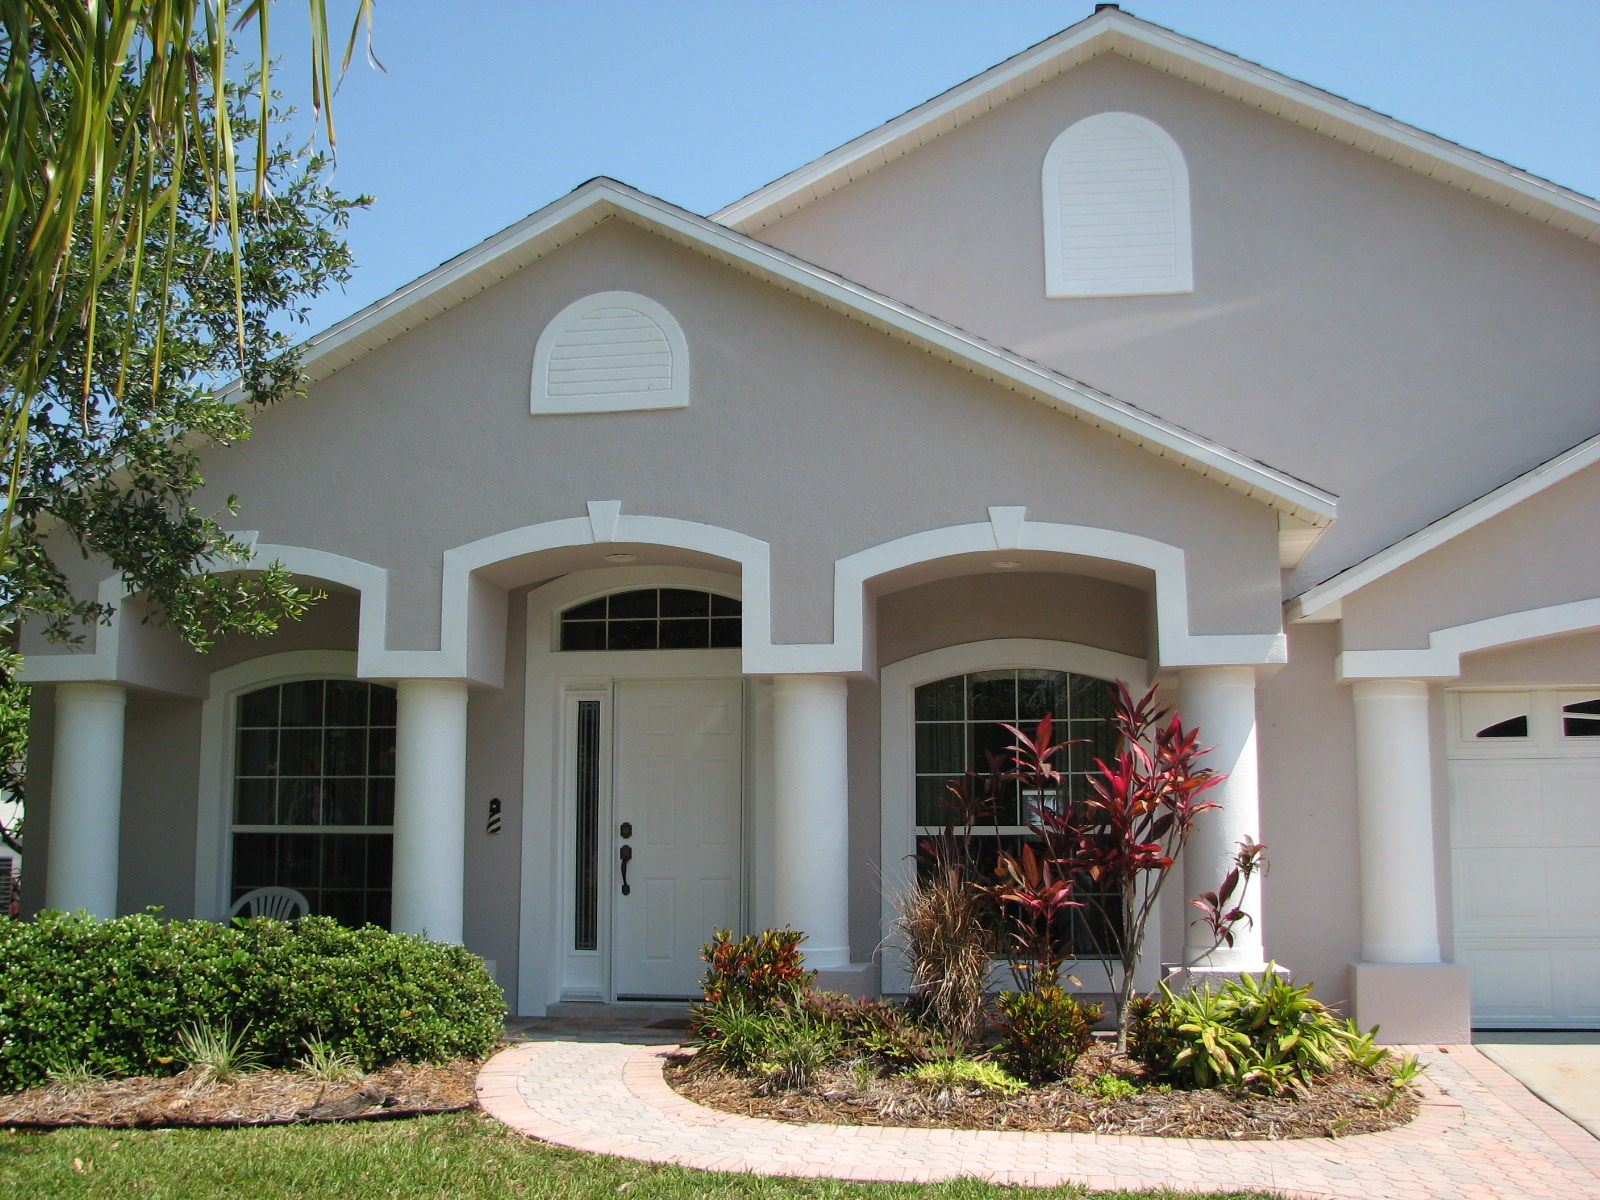 Stucco repair melbourne fl stucco cracks bulging stucco Best home paint